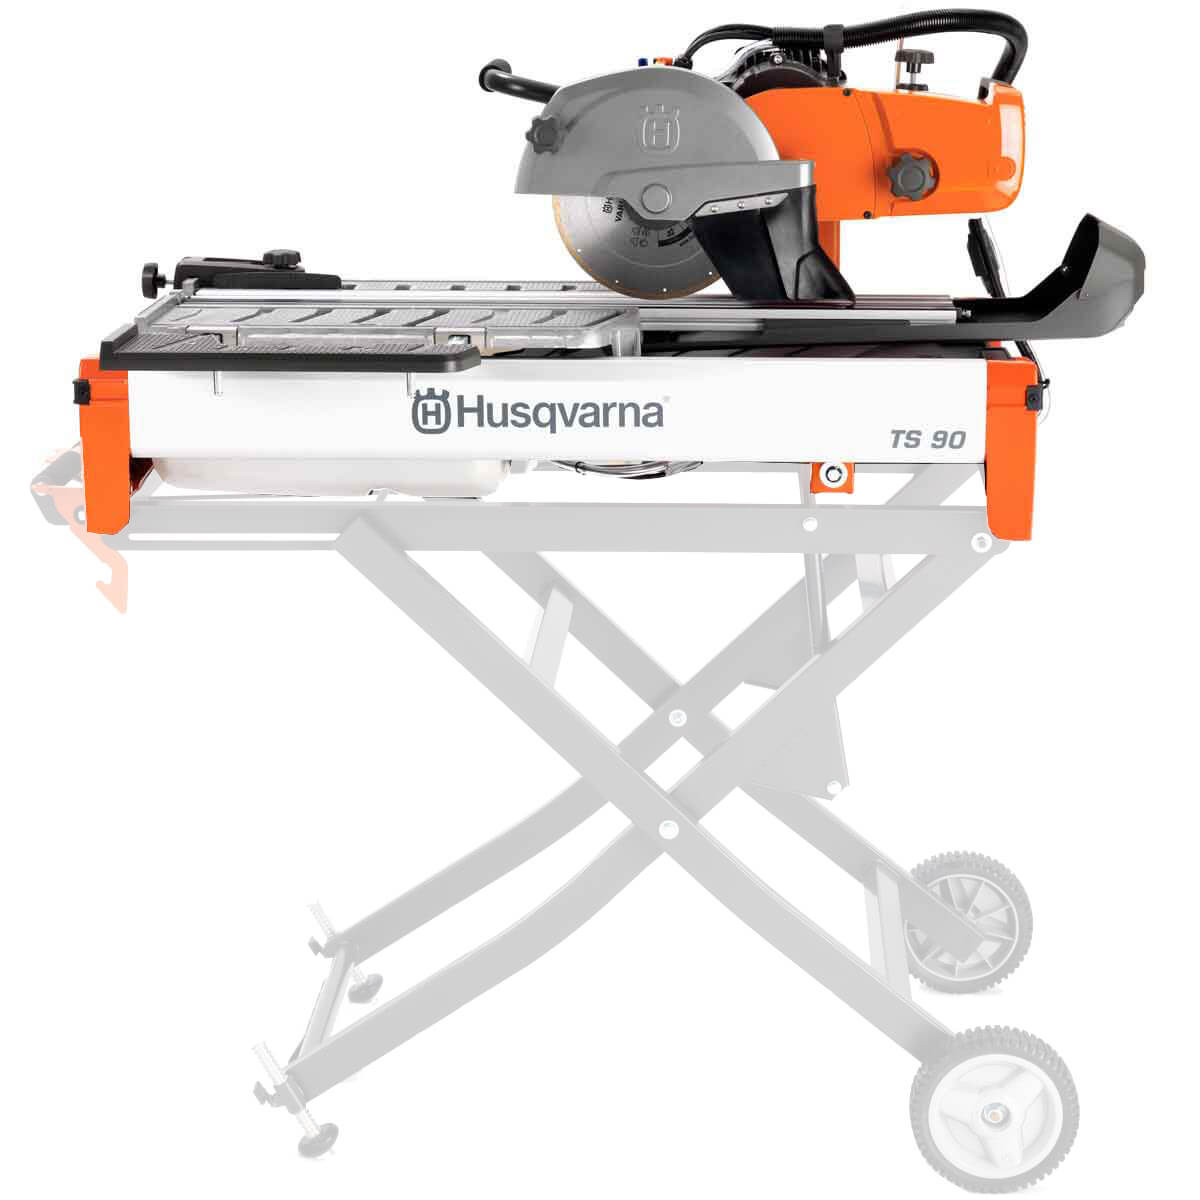 Husqvarna TS90 Wet Tile Saw Contractors Direct